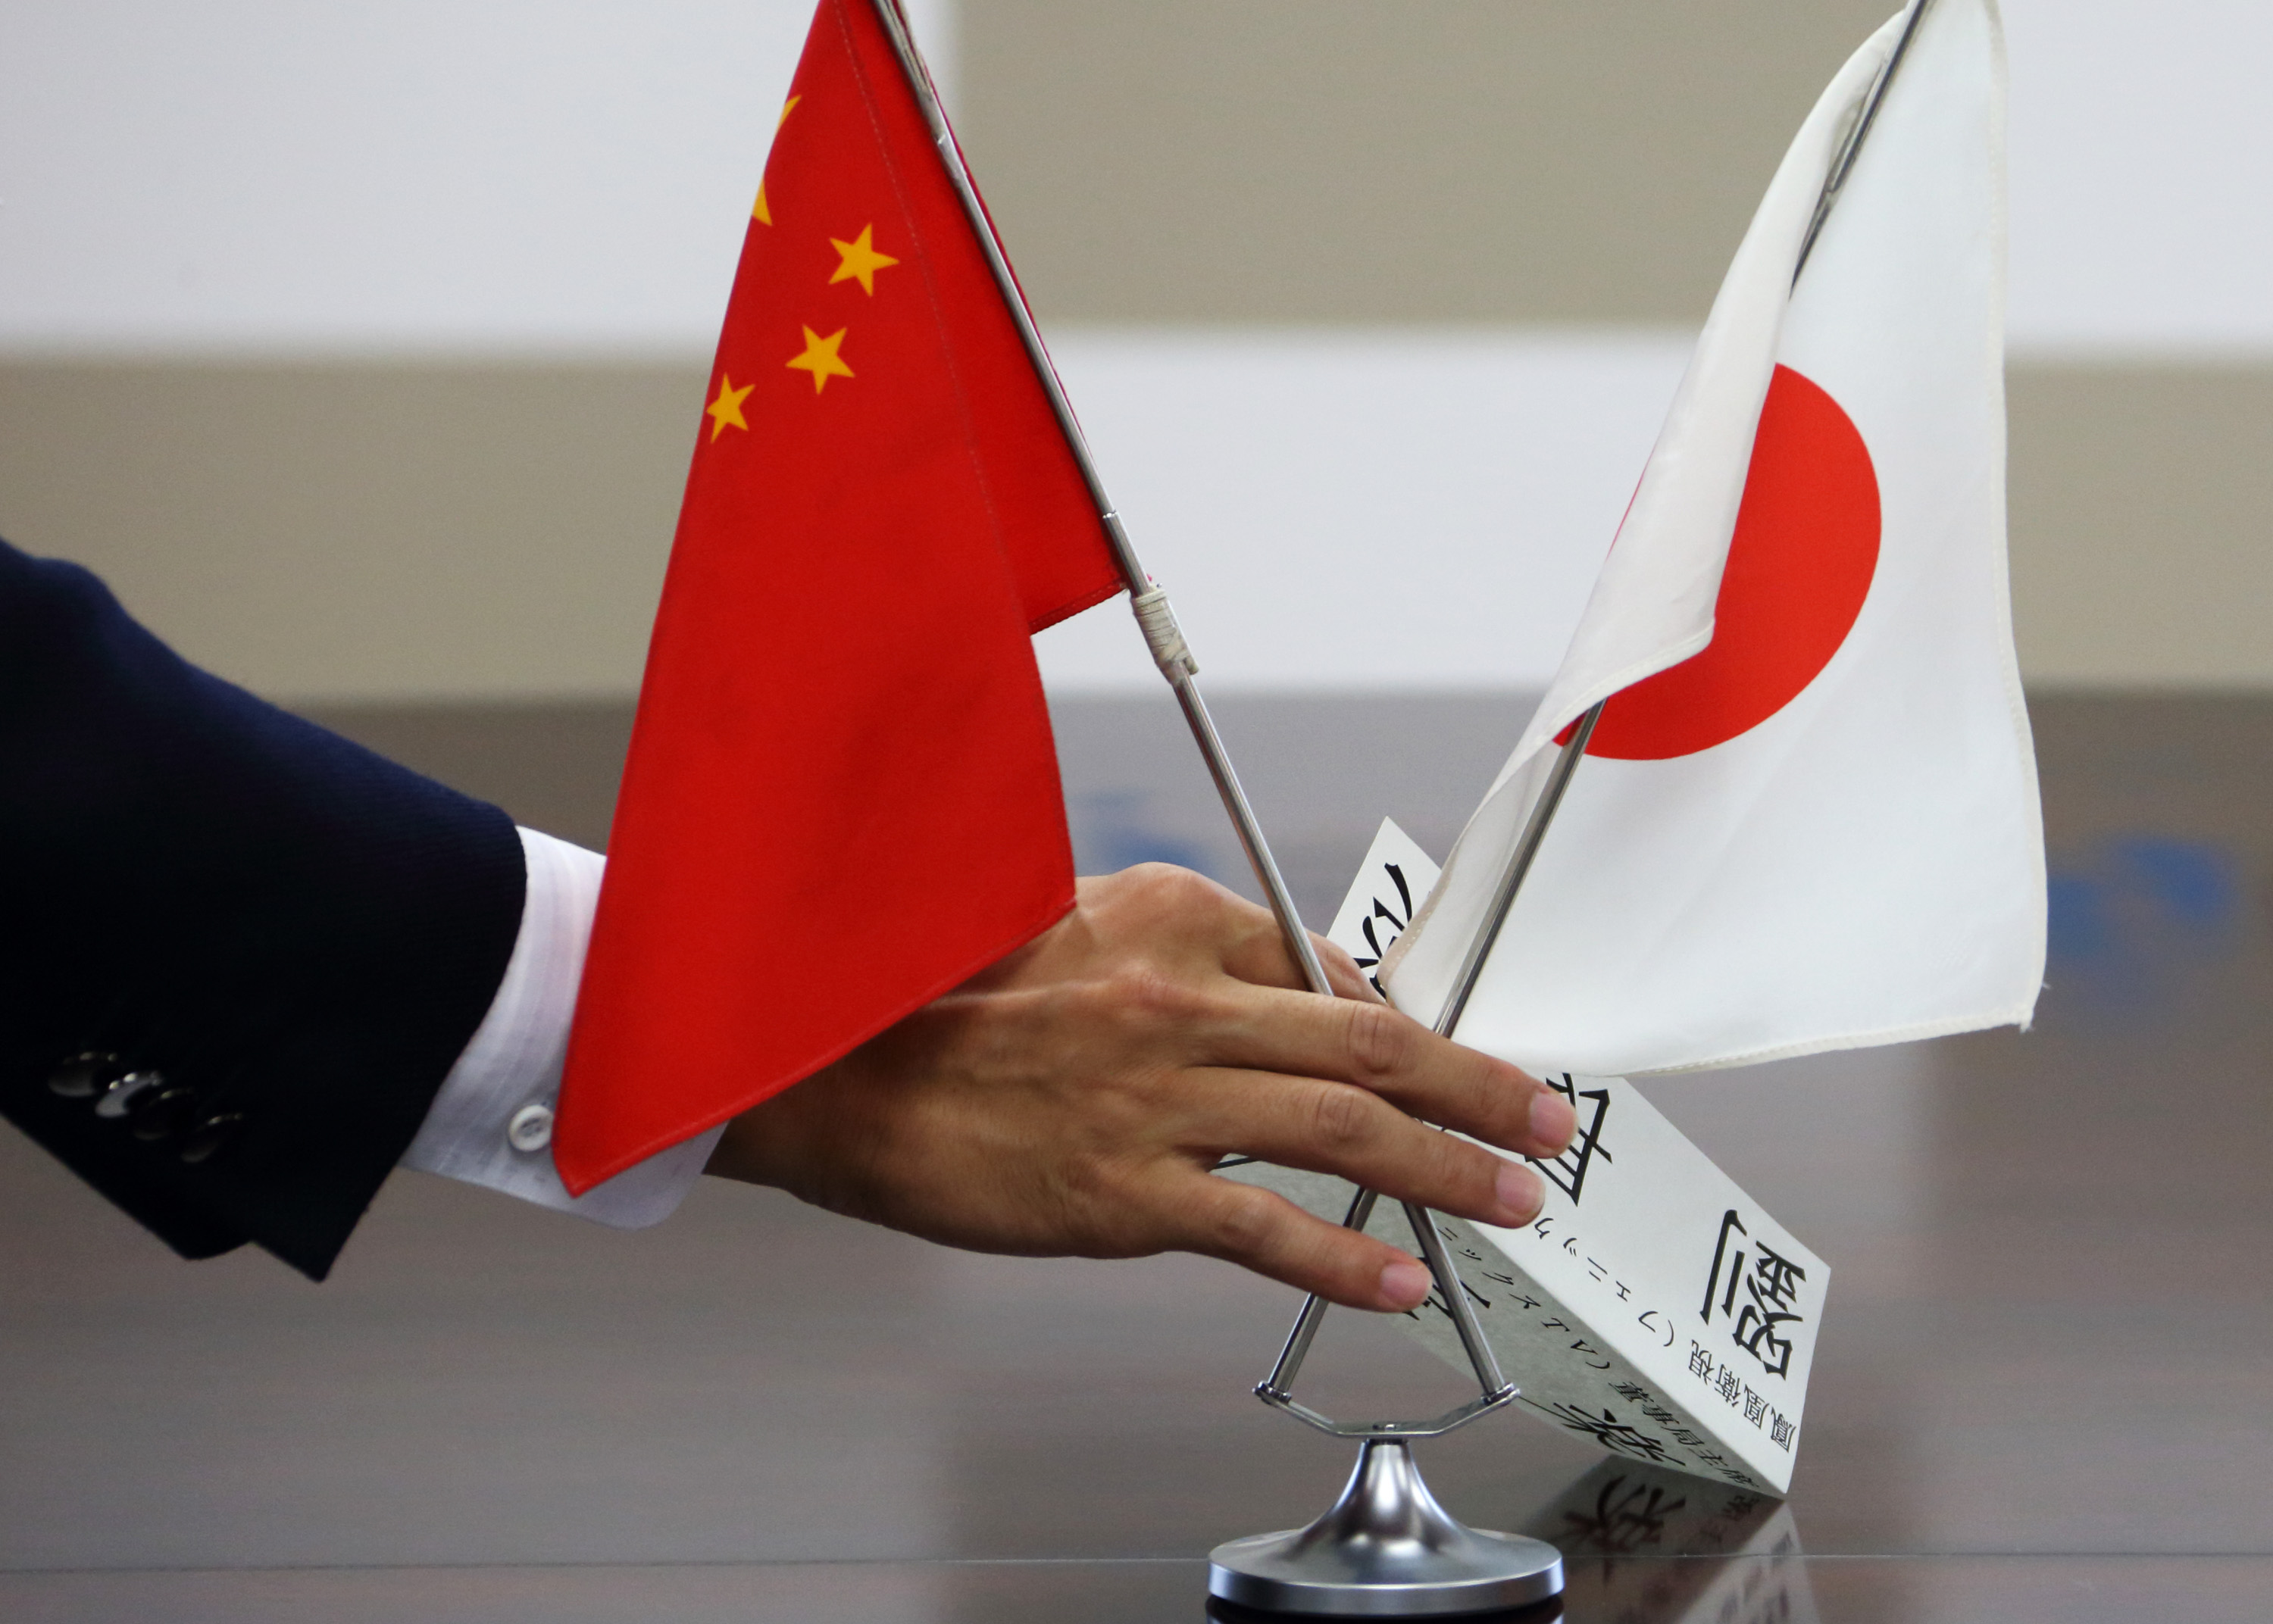 A staff member of Japan's Ministry of Economy, Trade and Industry arranges Chinese and Japanese flags before a meeting with a group of Chinese business leaders in Tokyo on Sept. 26, 2013